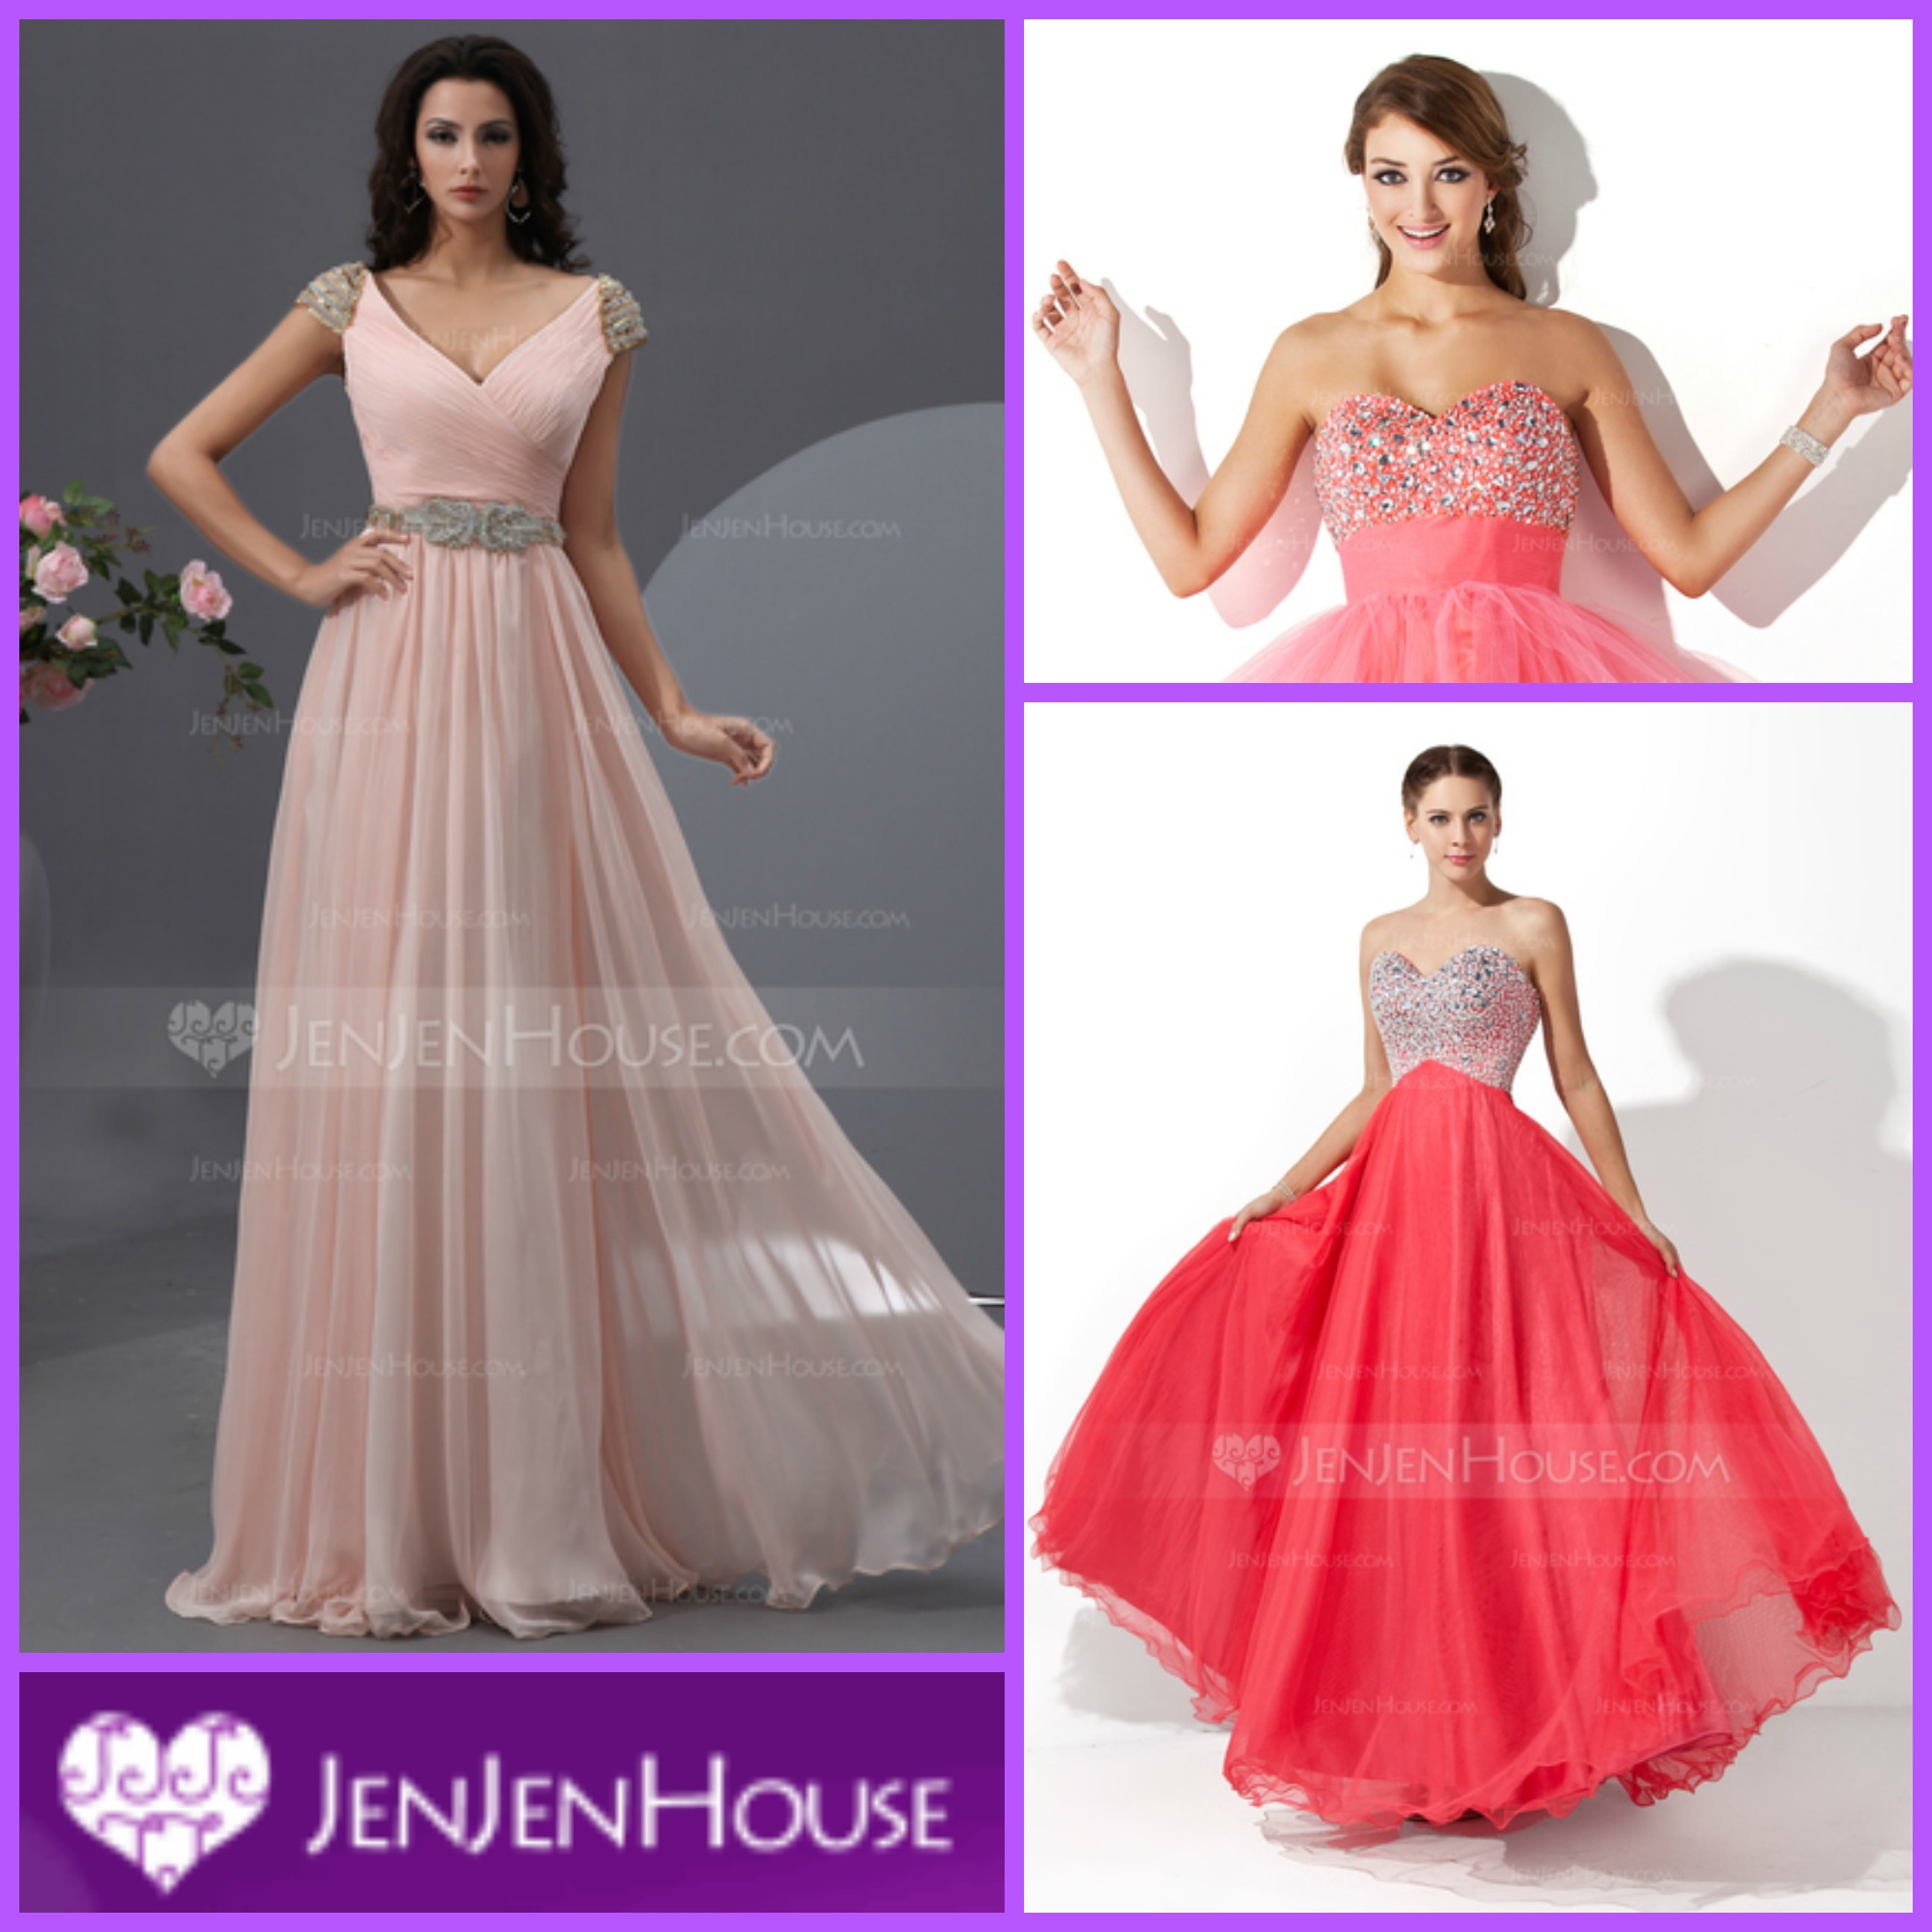 Get Ready For That Special Occasion With The Dress of Your Dreams ...